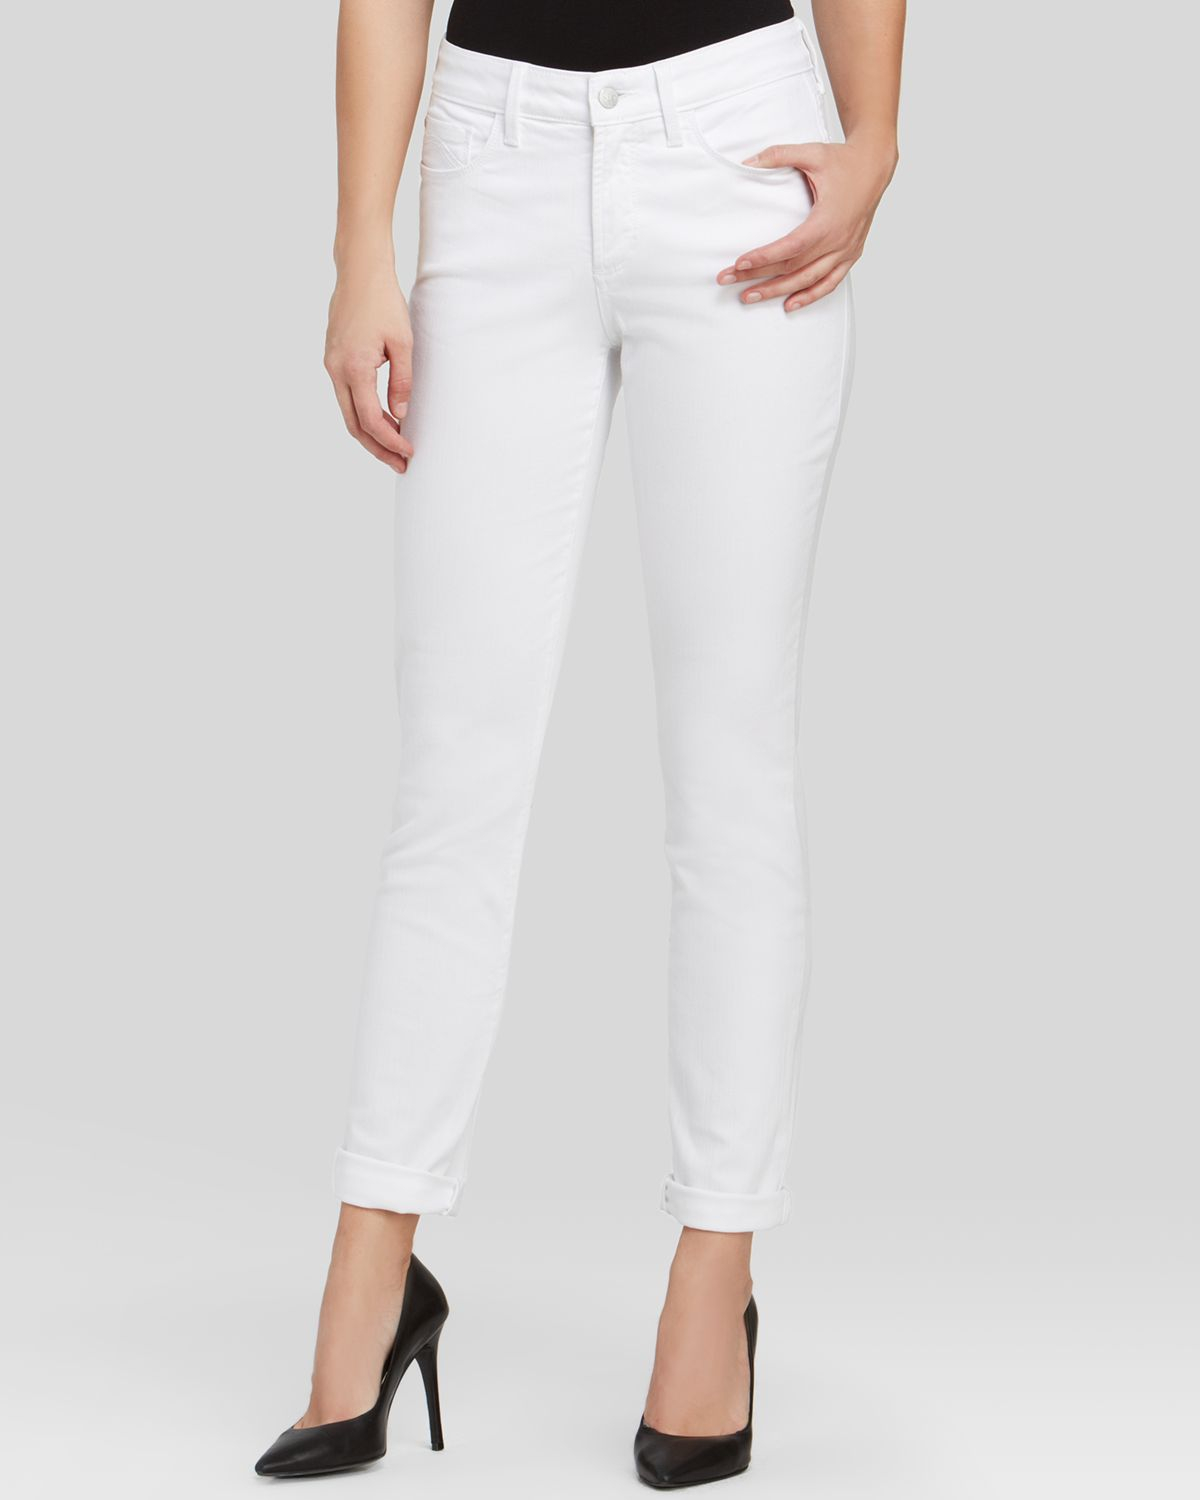 381193620aa45 Gallery. Previously sold at: Bloomingdale's · Women's White Jeans